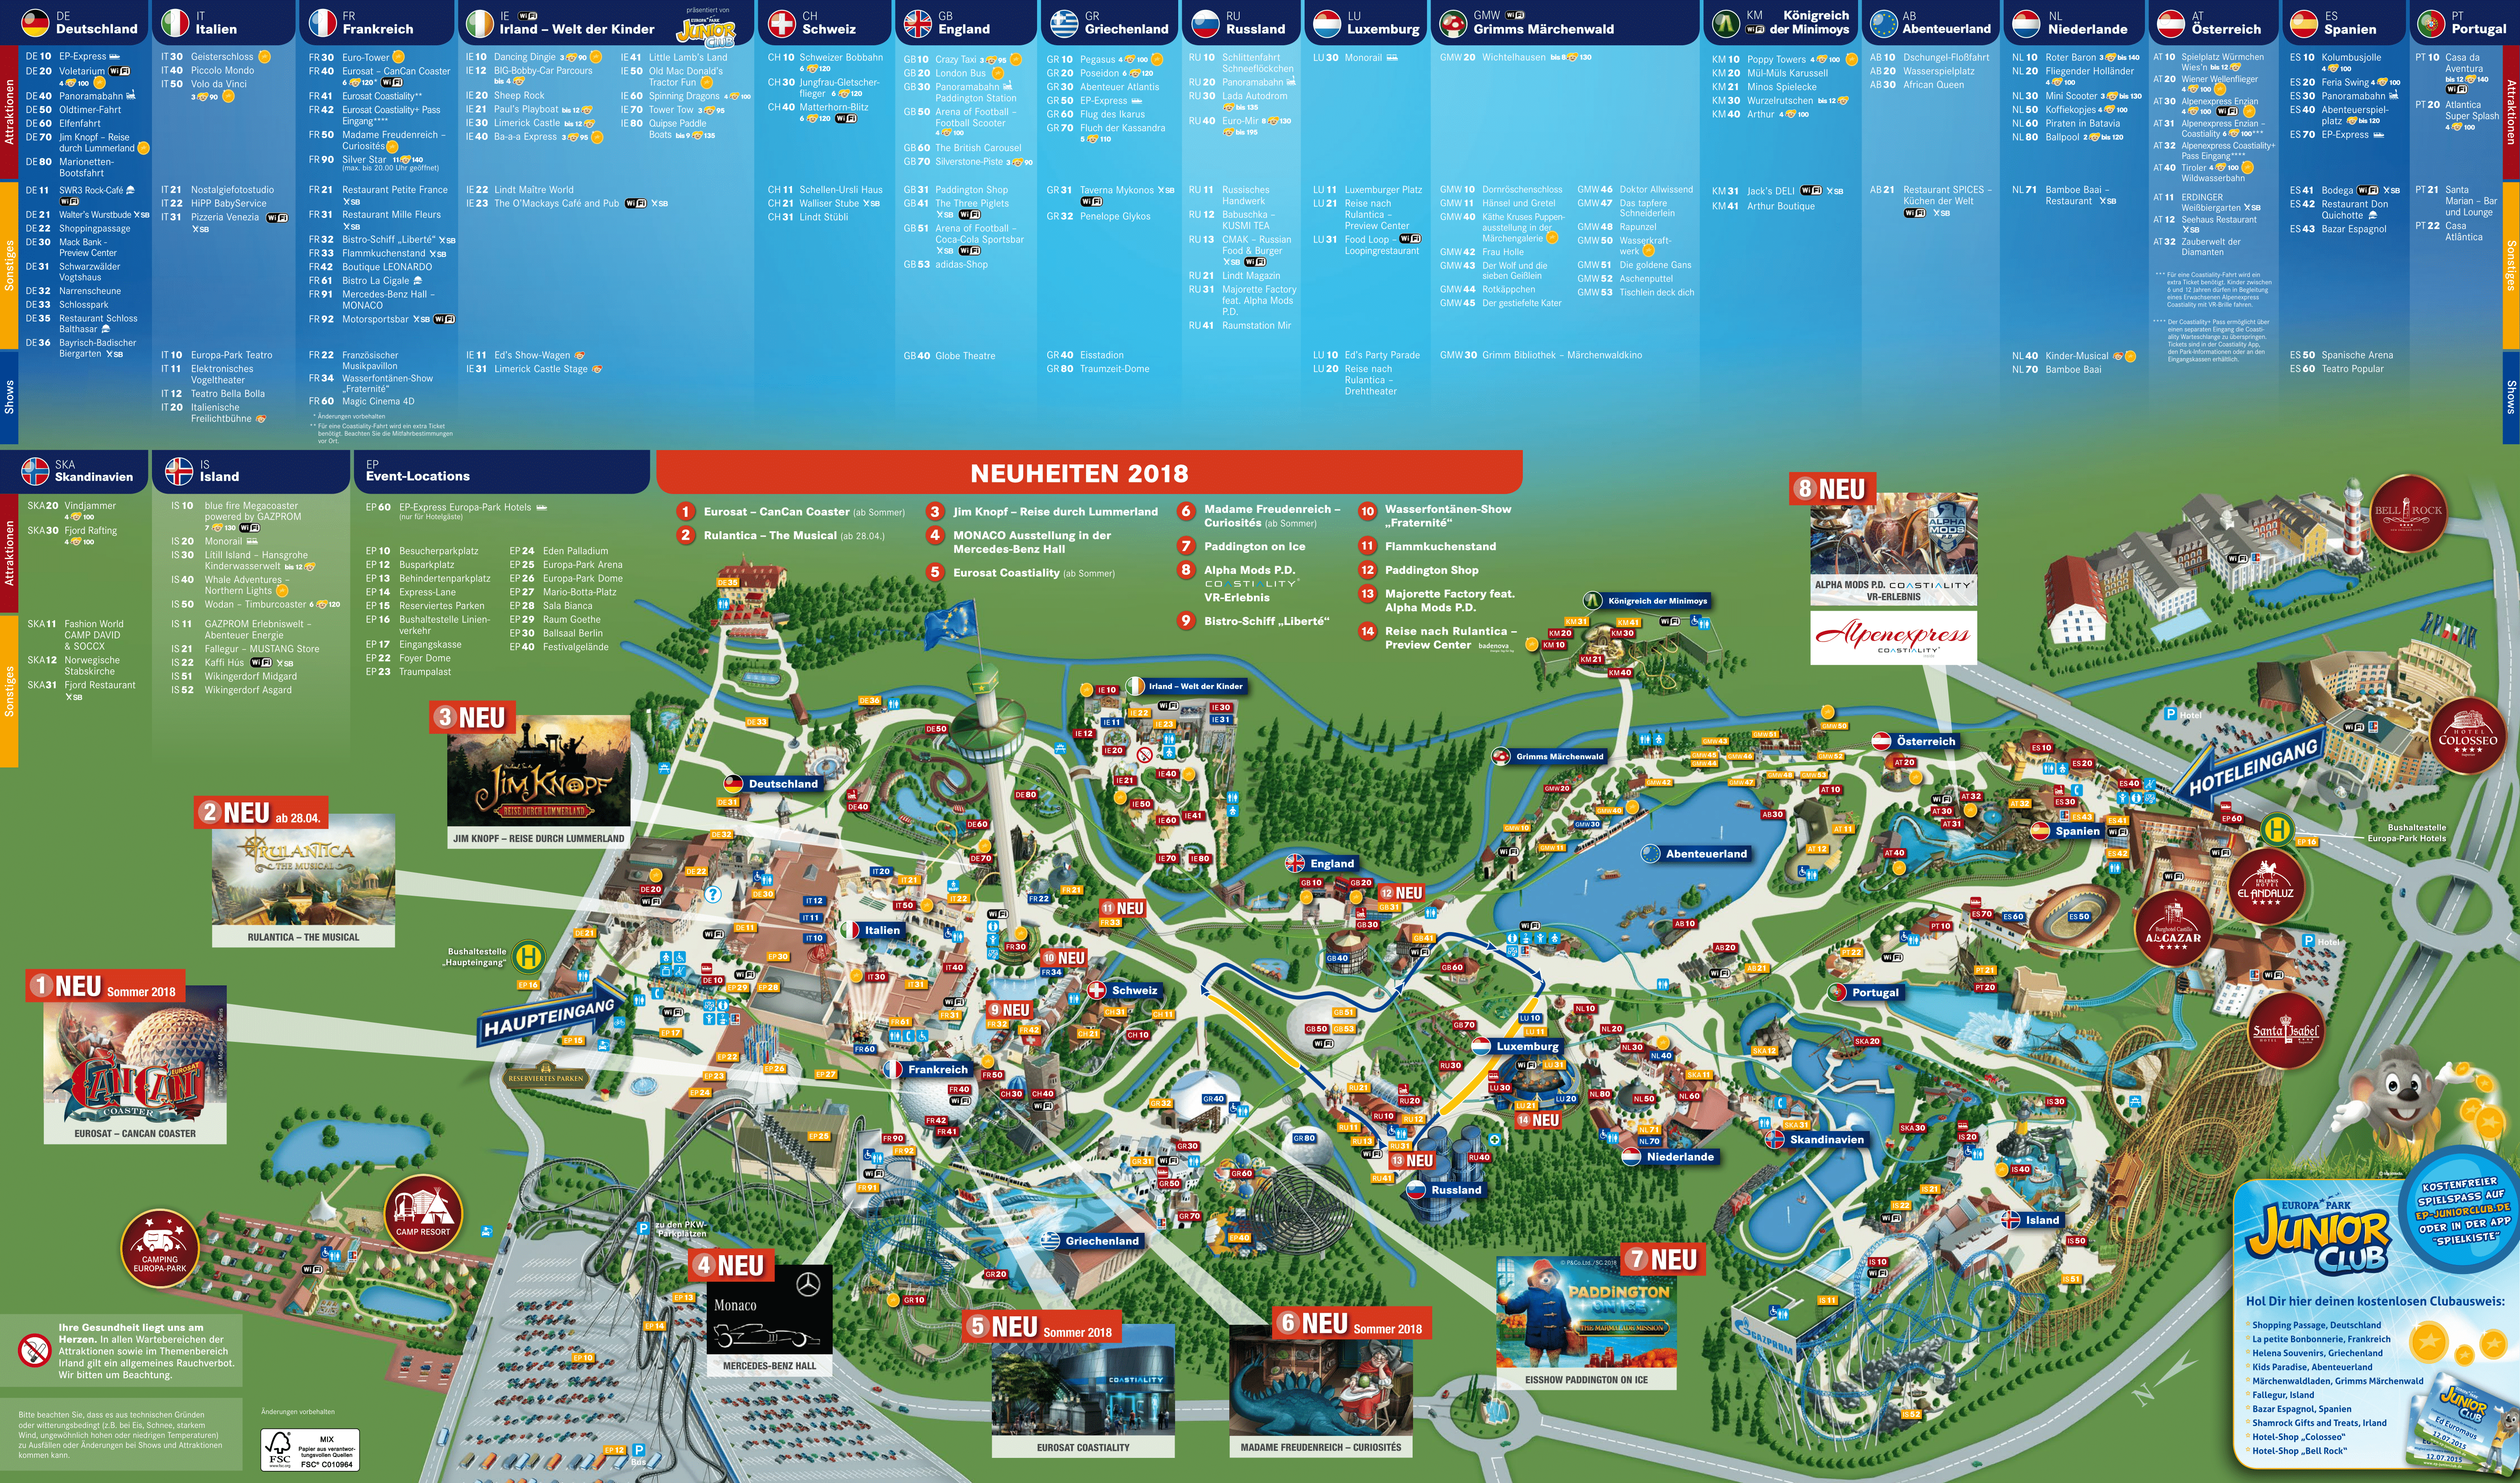 Europa Park Map From Nicerthannew Tourism Tourismmap Europapark Europaparkmap2020 In 2020 Tourism Map Park